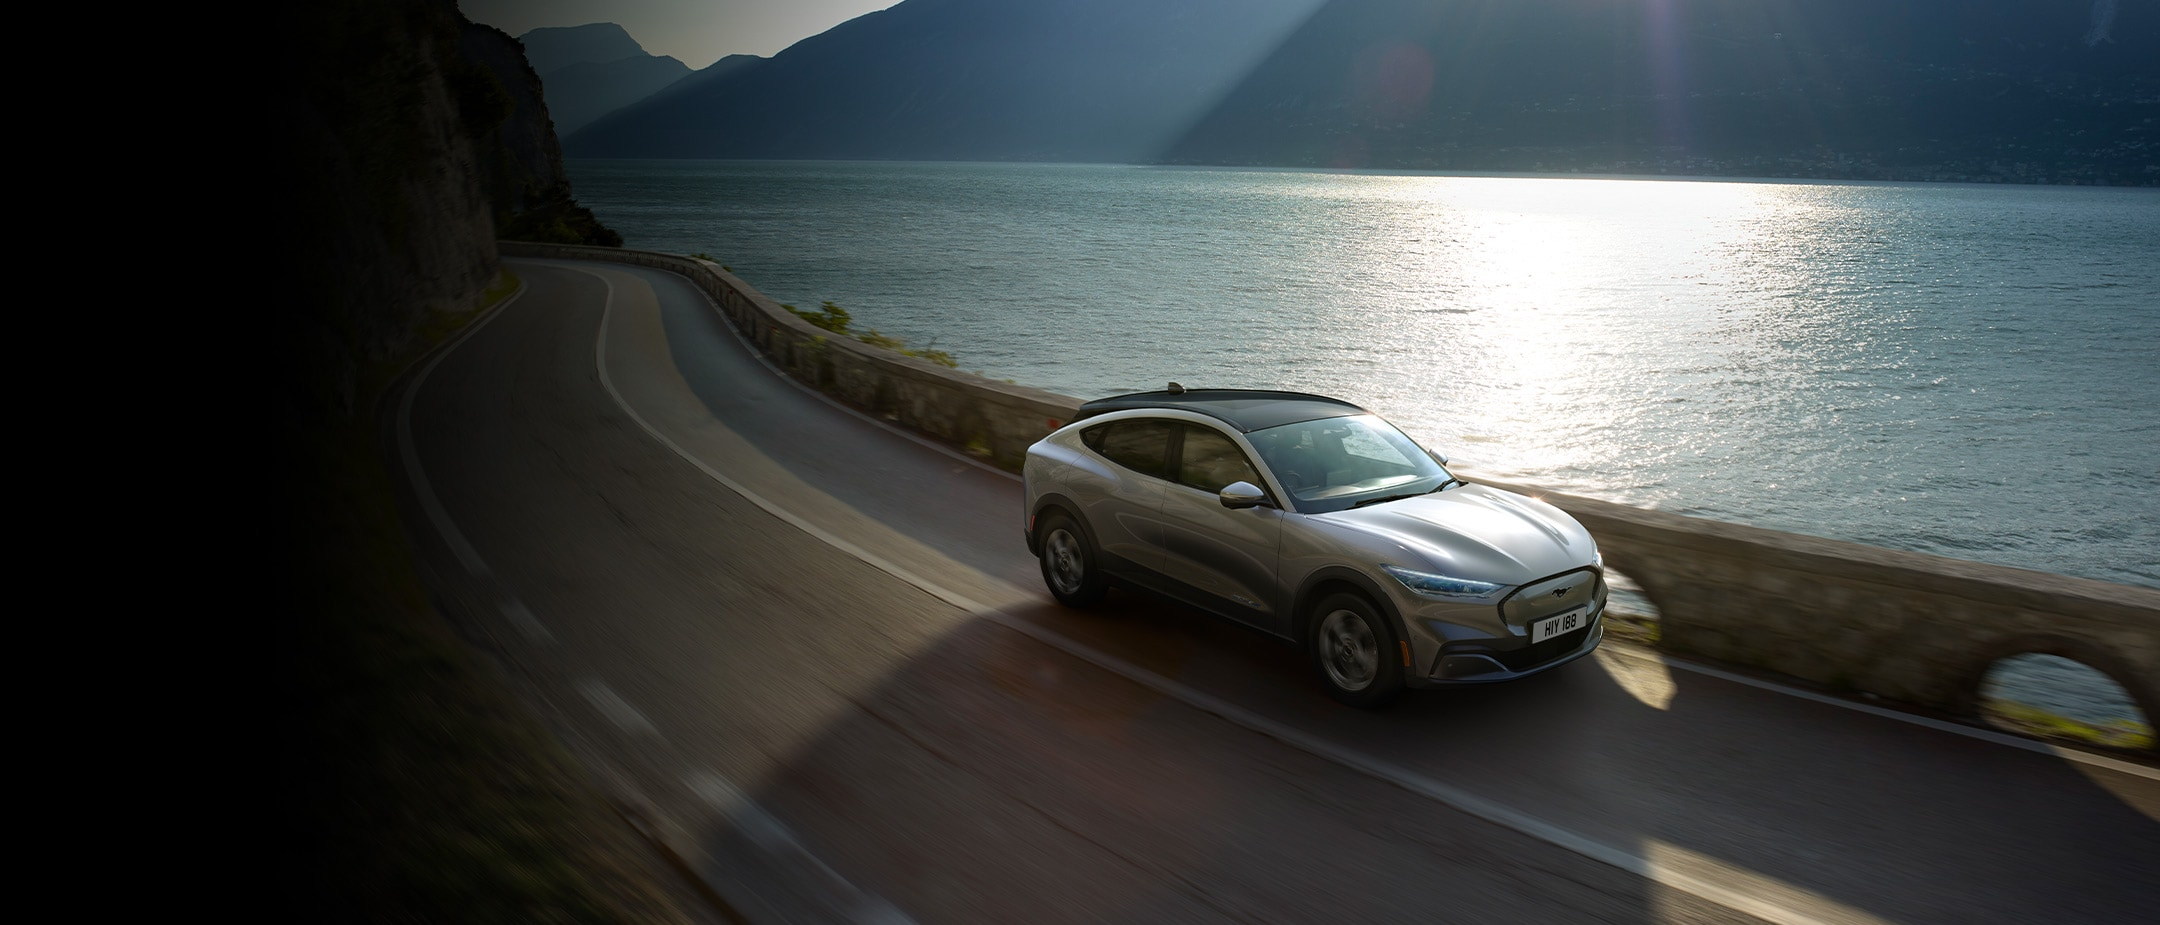 All-New Ford Mustang Mach-E in motion driving past the lake